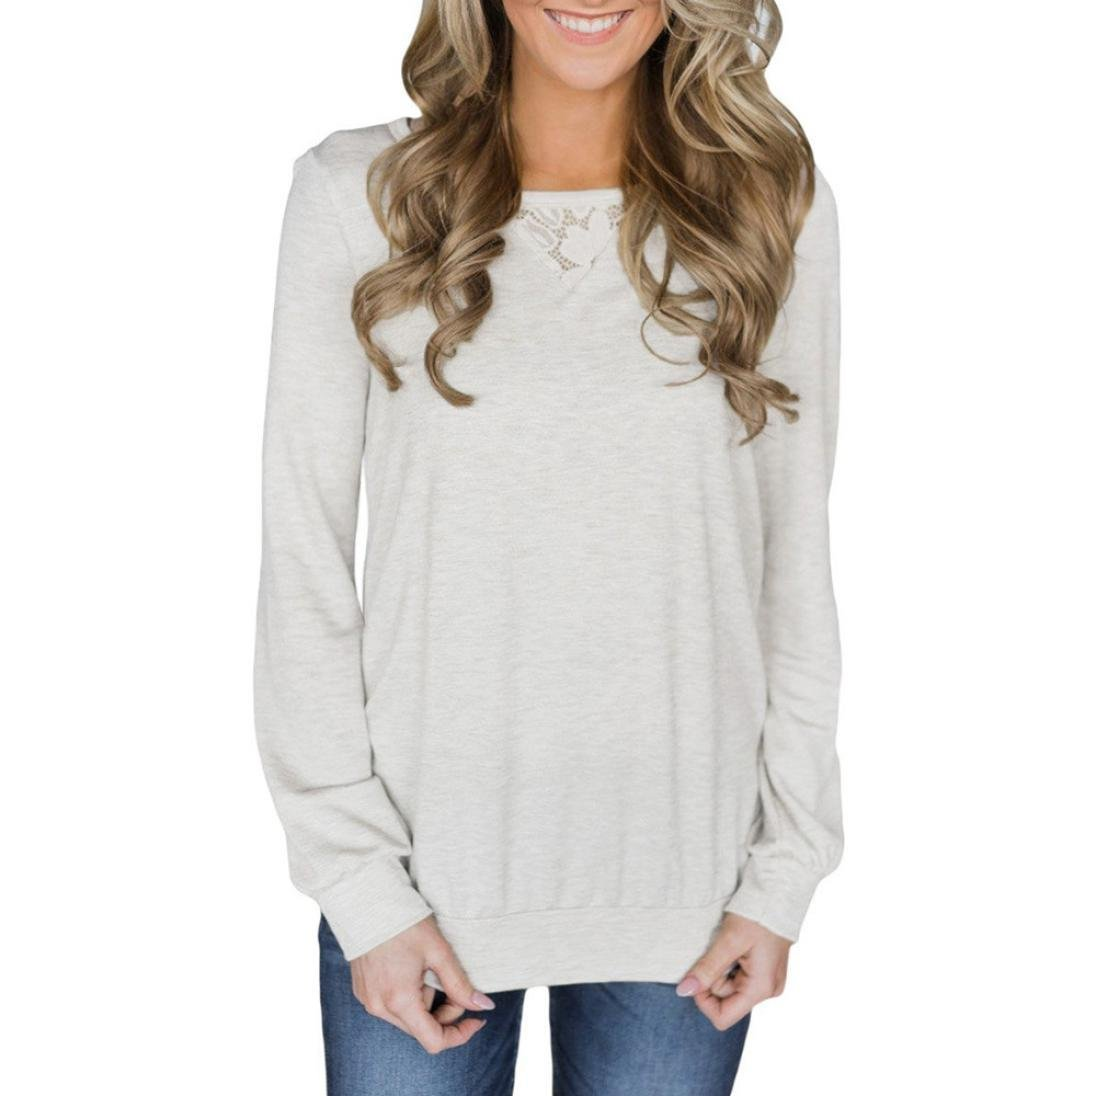 TOOPOOT Women Casual Long Sleeve Blouse,Ladies O Neck Sweatshirt Pullover Back Stitching Pleated T-Shirt Tops